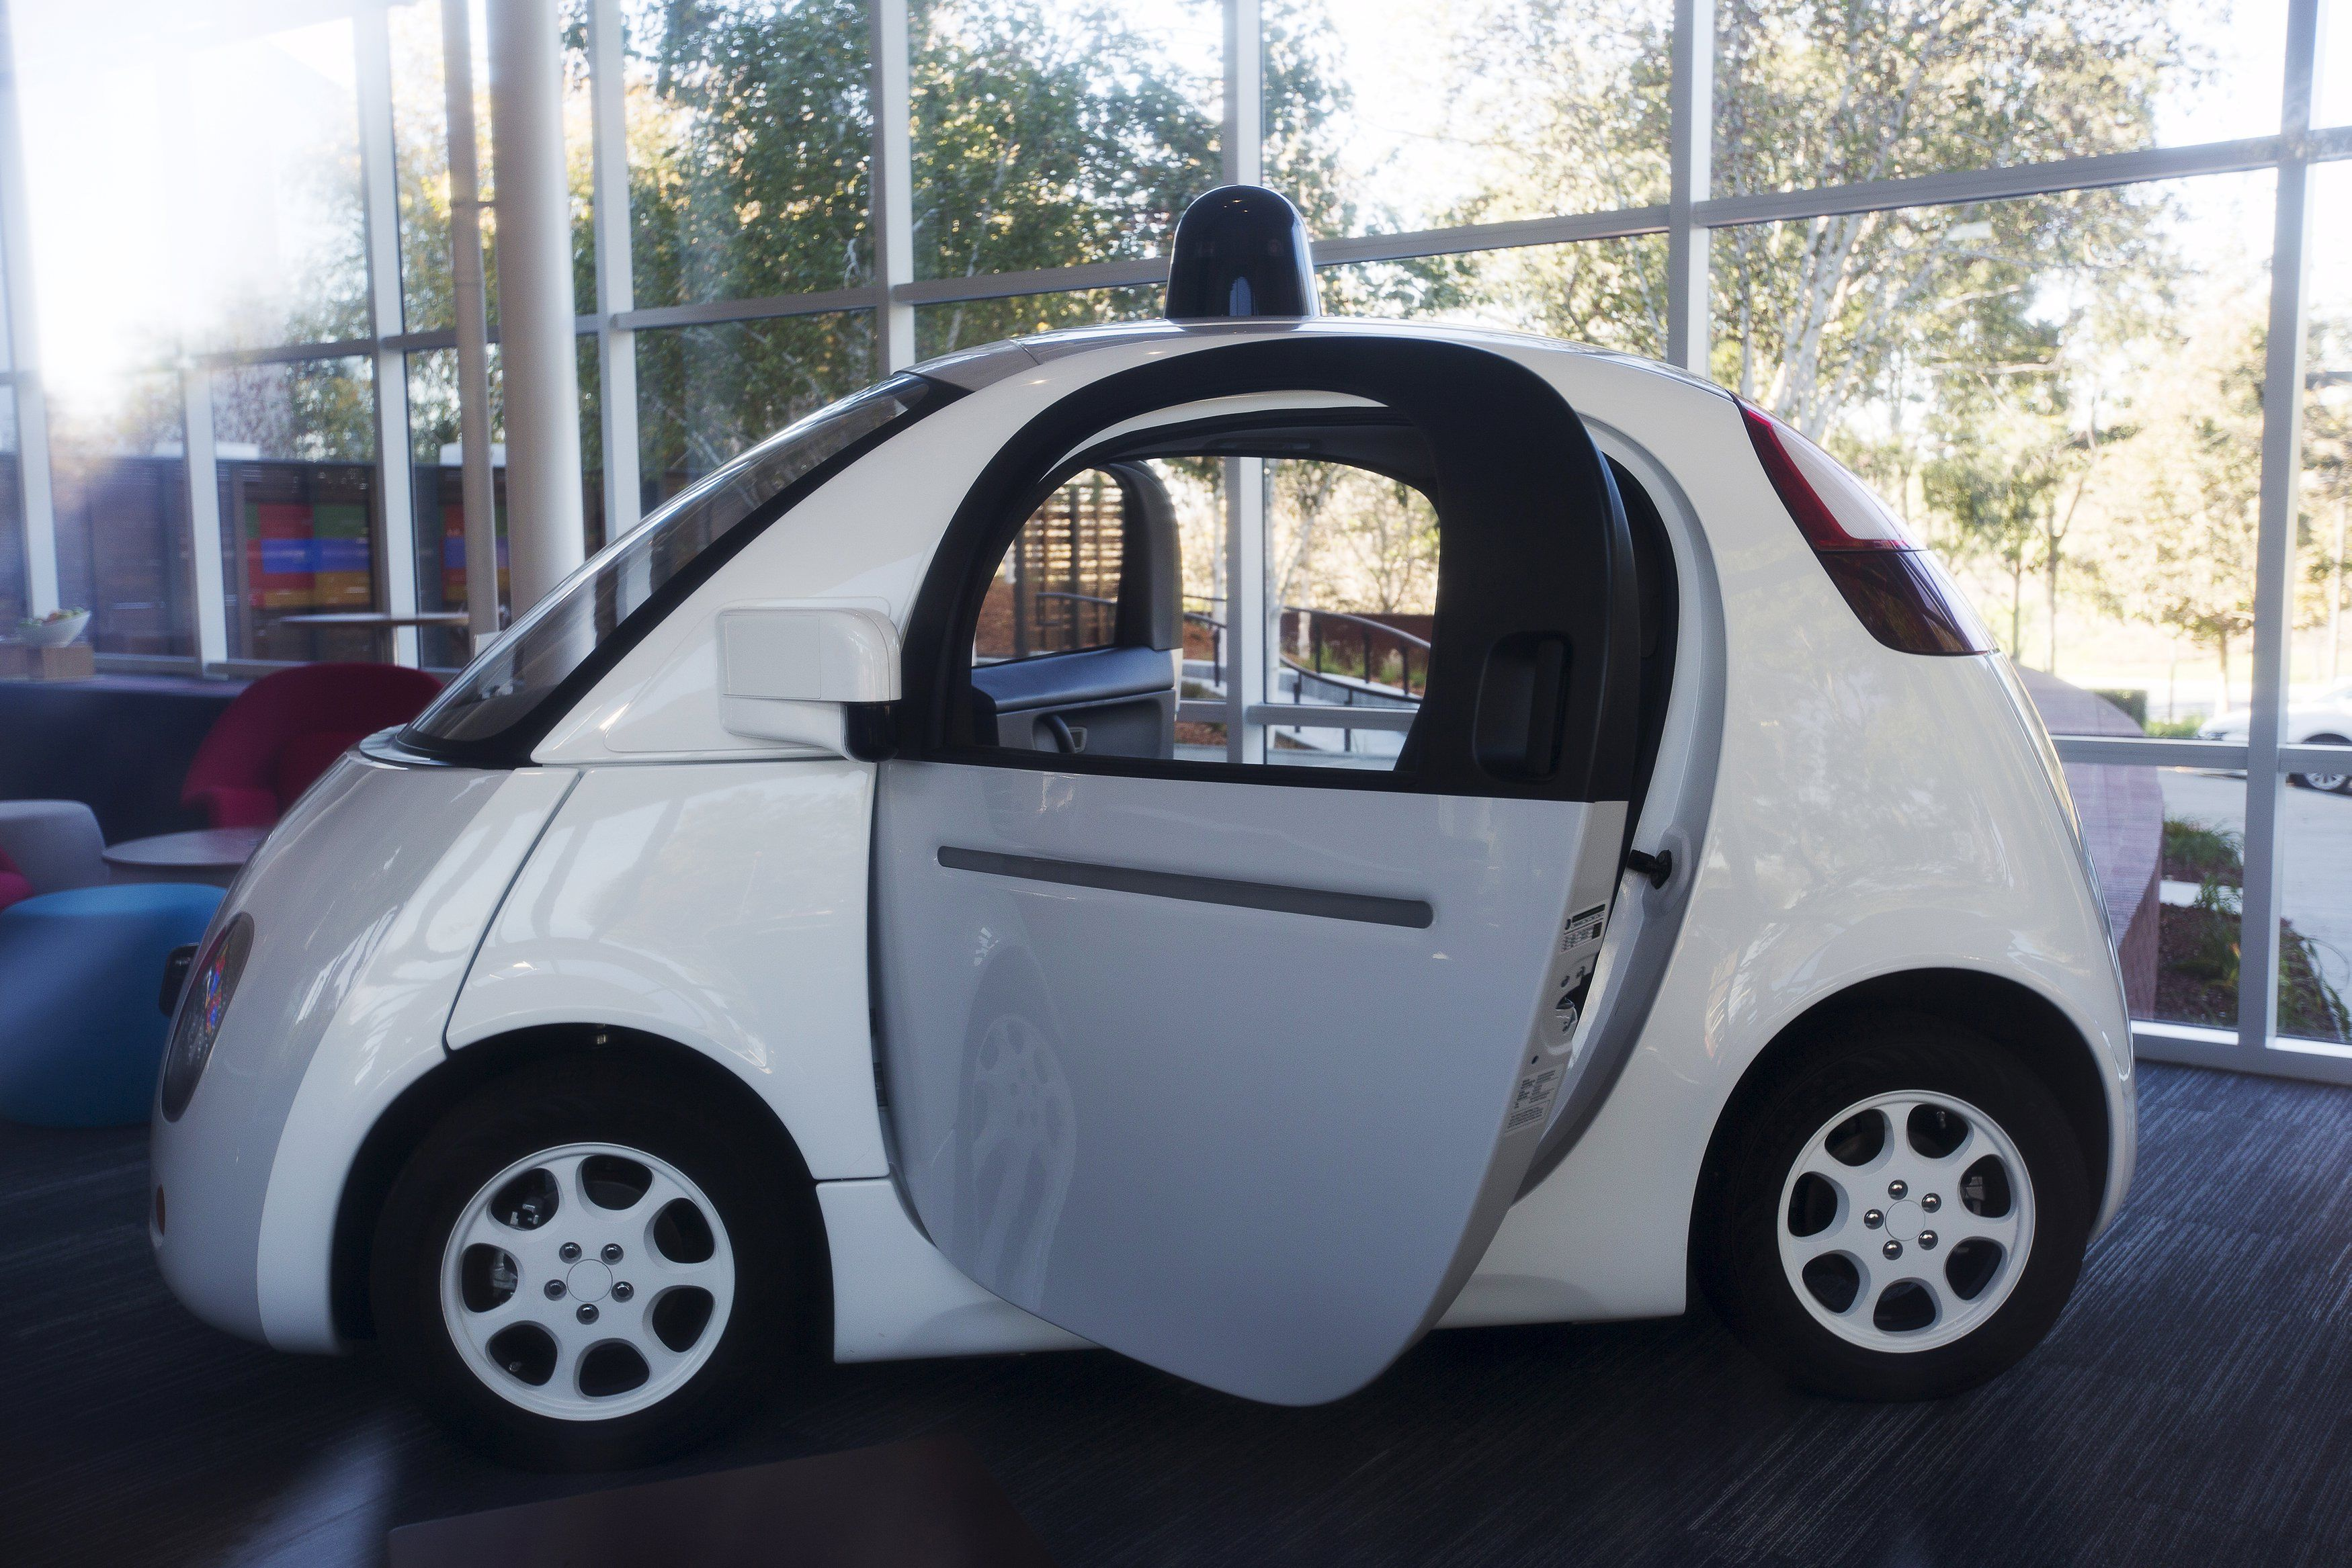 Google's self-driving car software seen as driver by US